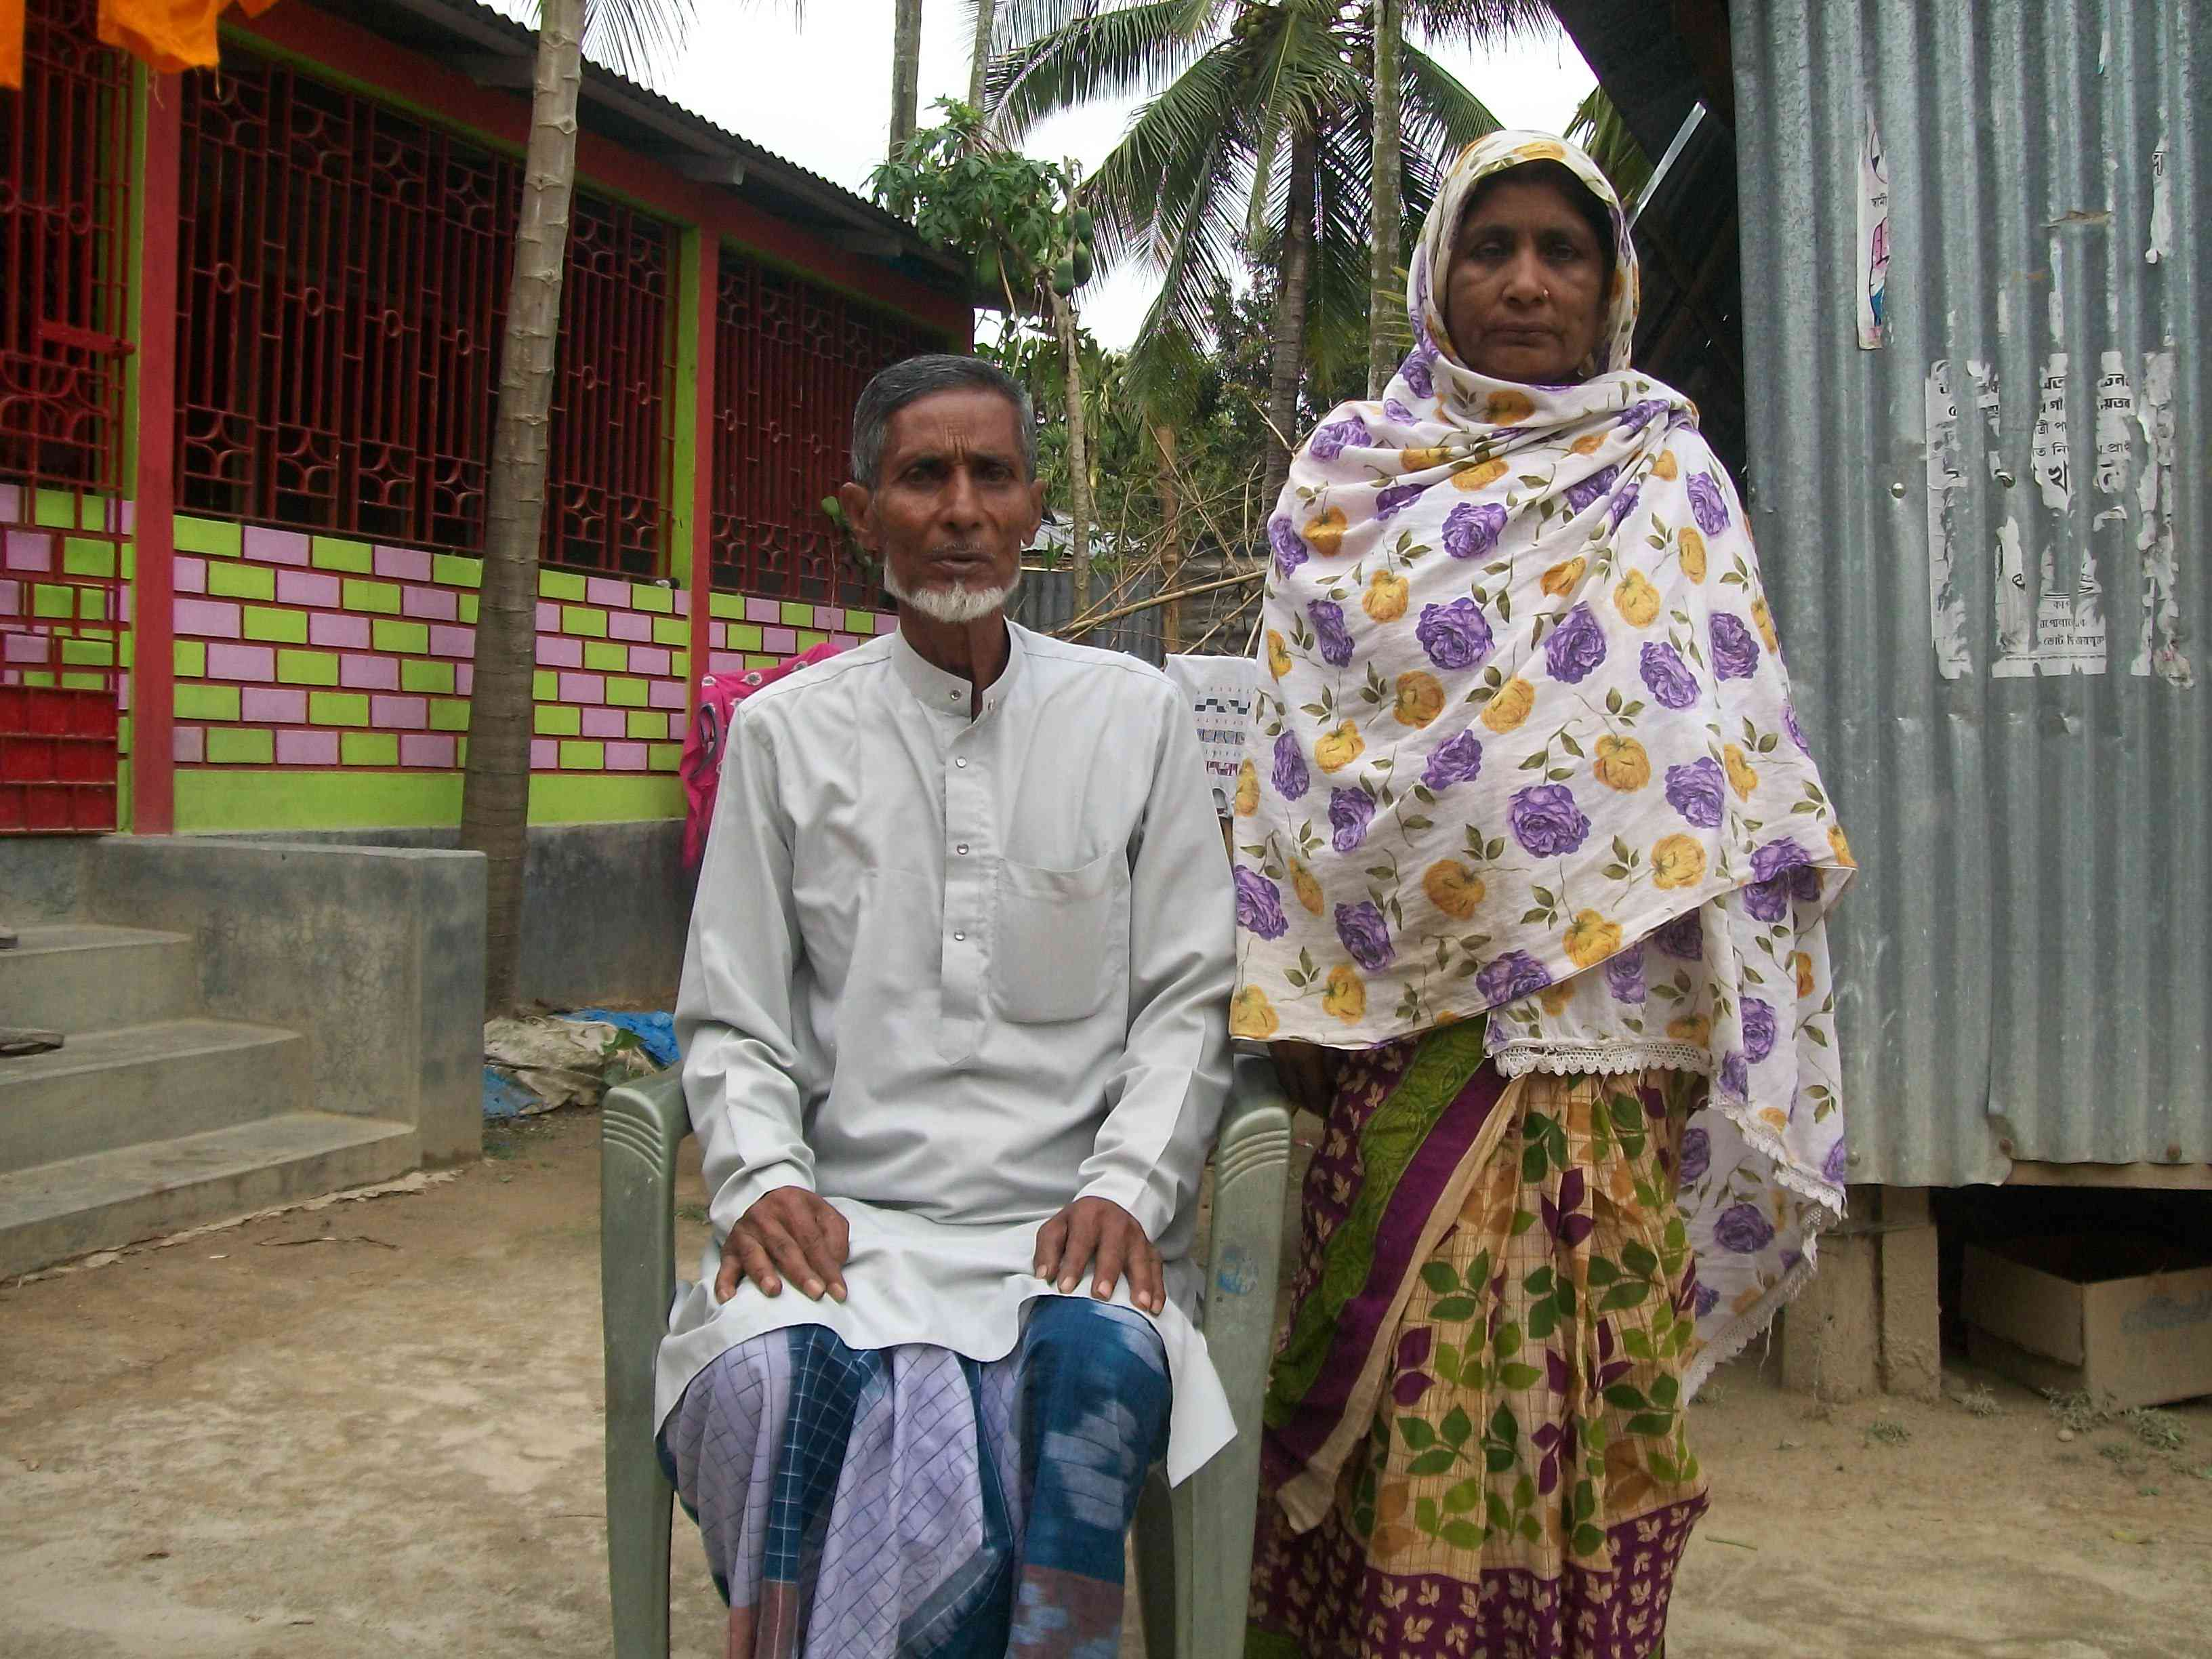 Romisa Khatun, who was left out of the draft register, and her husband, Jahanuddin Sheikh, are tired of Badruddin Ajmal's religious rhetoric. (Photo credit: Ipsita Chakravarty).